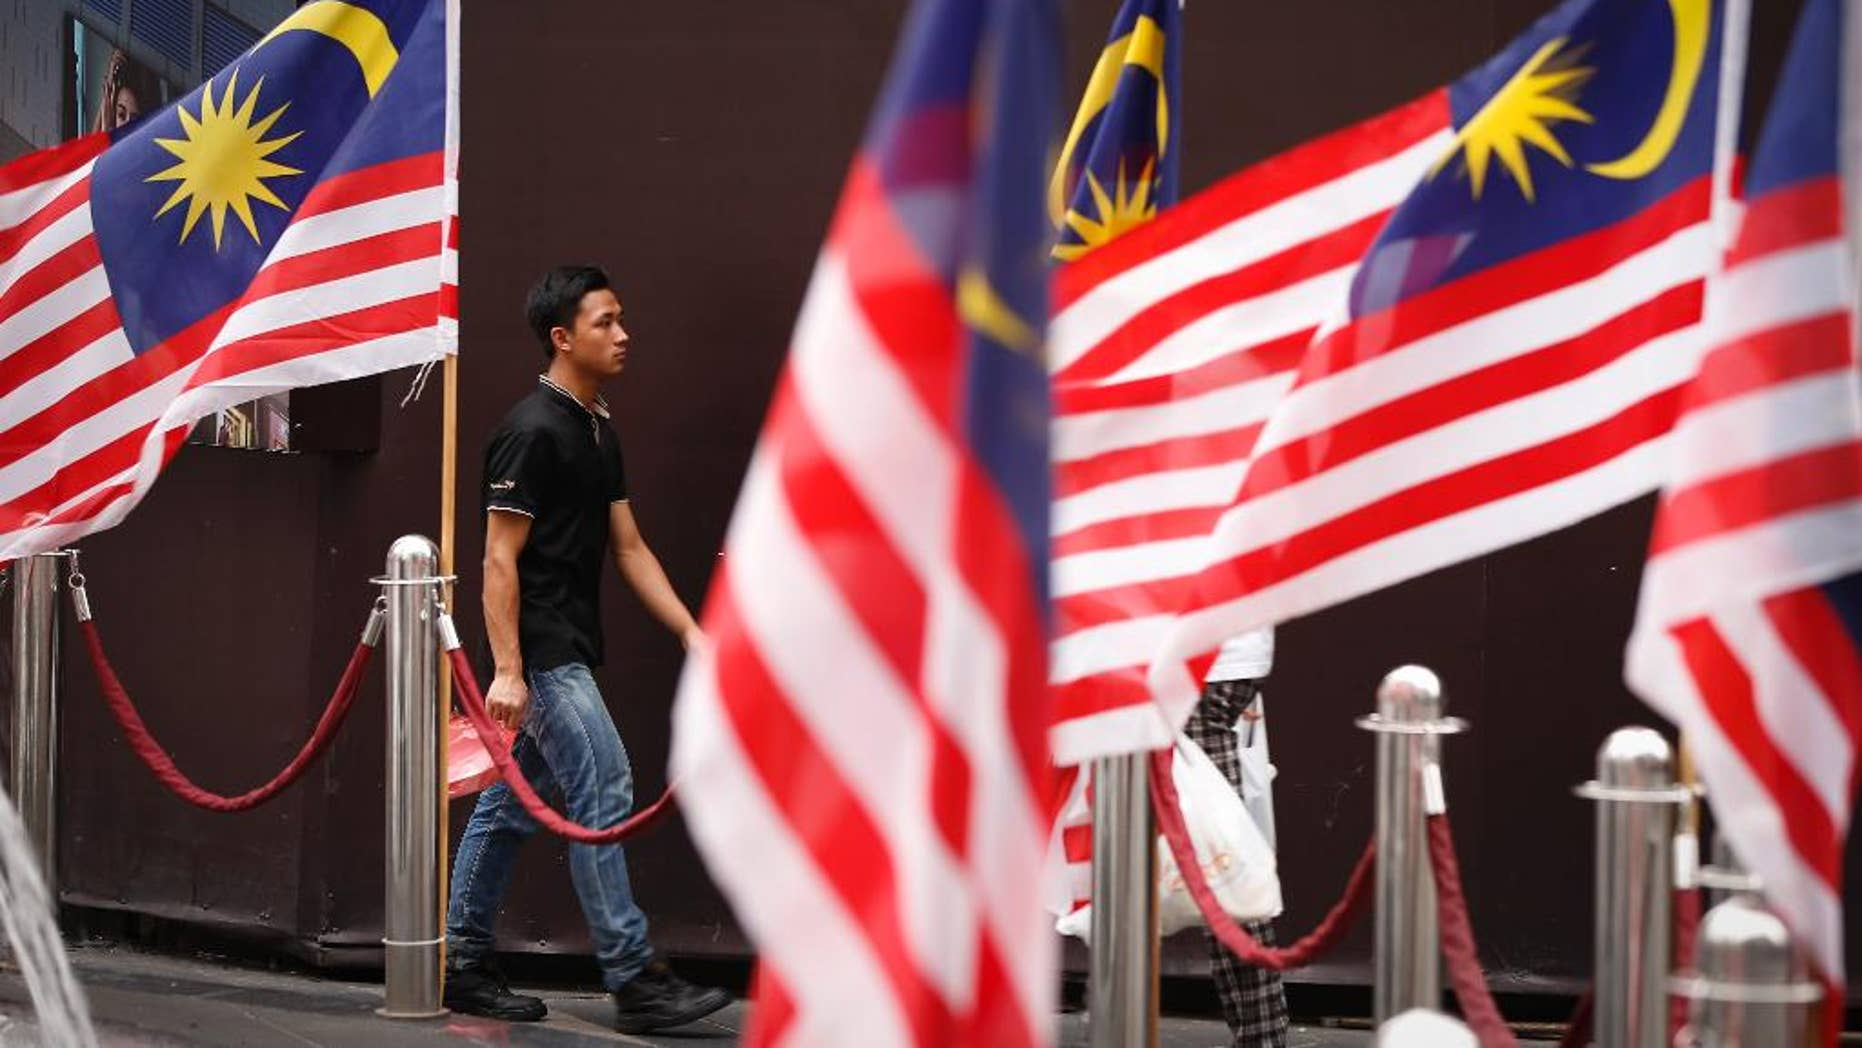 A man walks by displays of Malaysian national flags outside a shopping mall in Kuala Lumpur, Malaysia Wednesday, Aug. 12, 2015. A Malaysian opposition party Wednesday filed a civil lawsuit against Prime Minister Najib Razak for alleged election offenses involving $700 million in his bank accounts. (AP Photo/Vincent Thian)